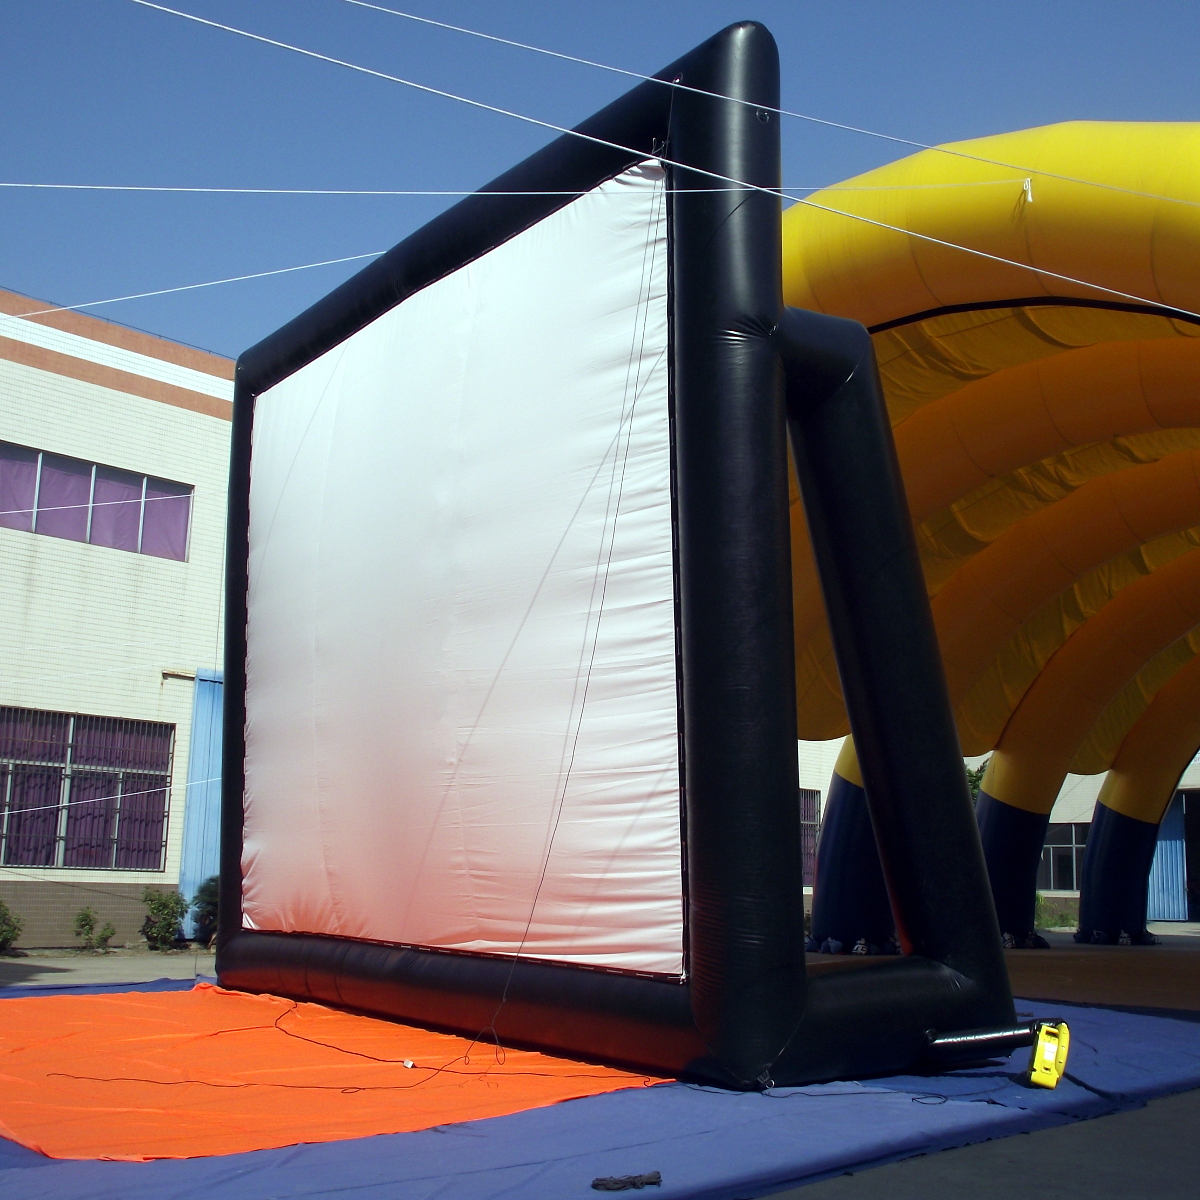 SY0307 5x3m Movie Screen Inflatable Giant Outdoor Projector Cinema Theatre Backyard